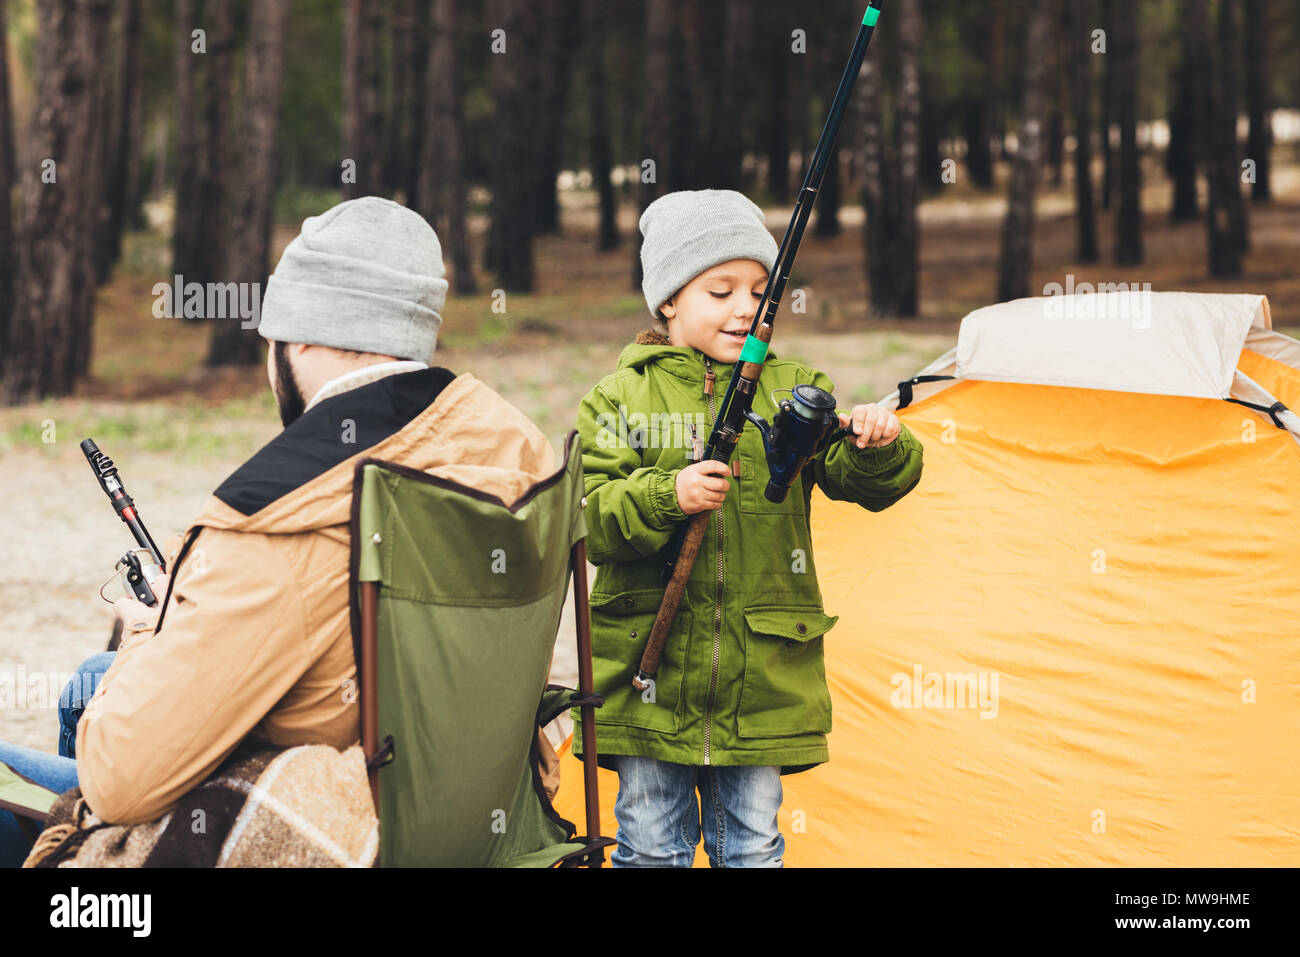 father and son with fishing rods spending time together on trip - Stock Image